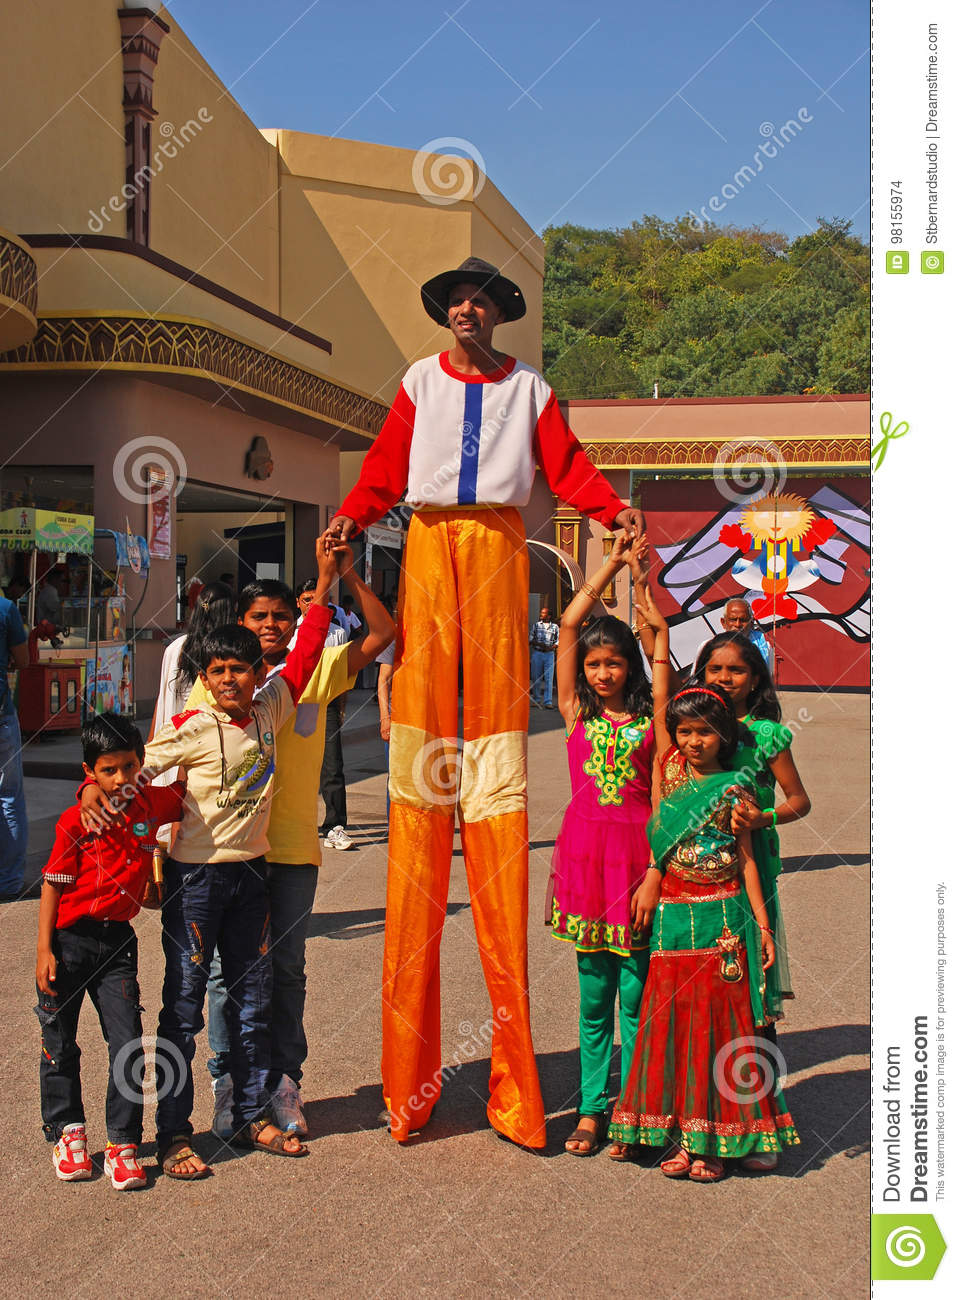 Friendly Clown on Stilts smiling widely while posing with Children at Ramoji Film City - world`s largest film studio complex